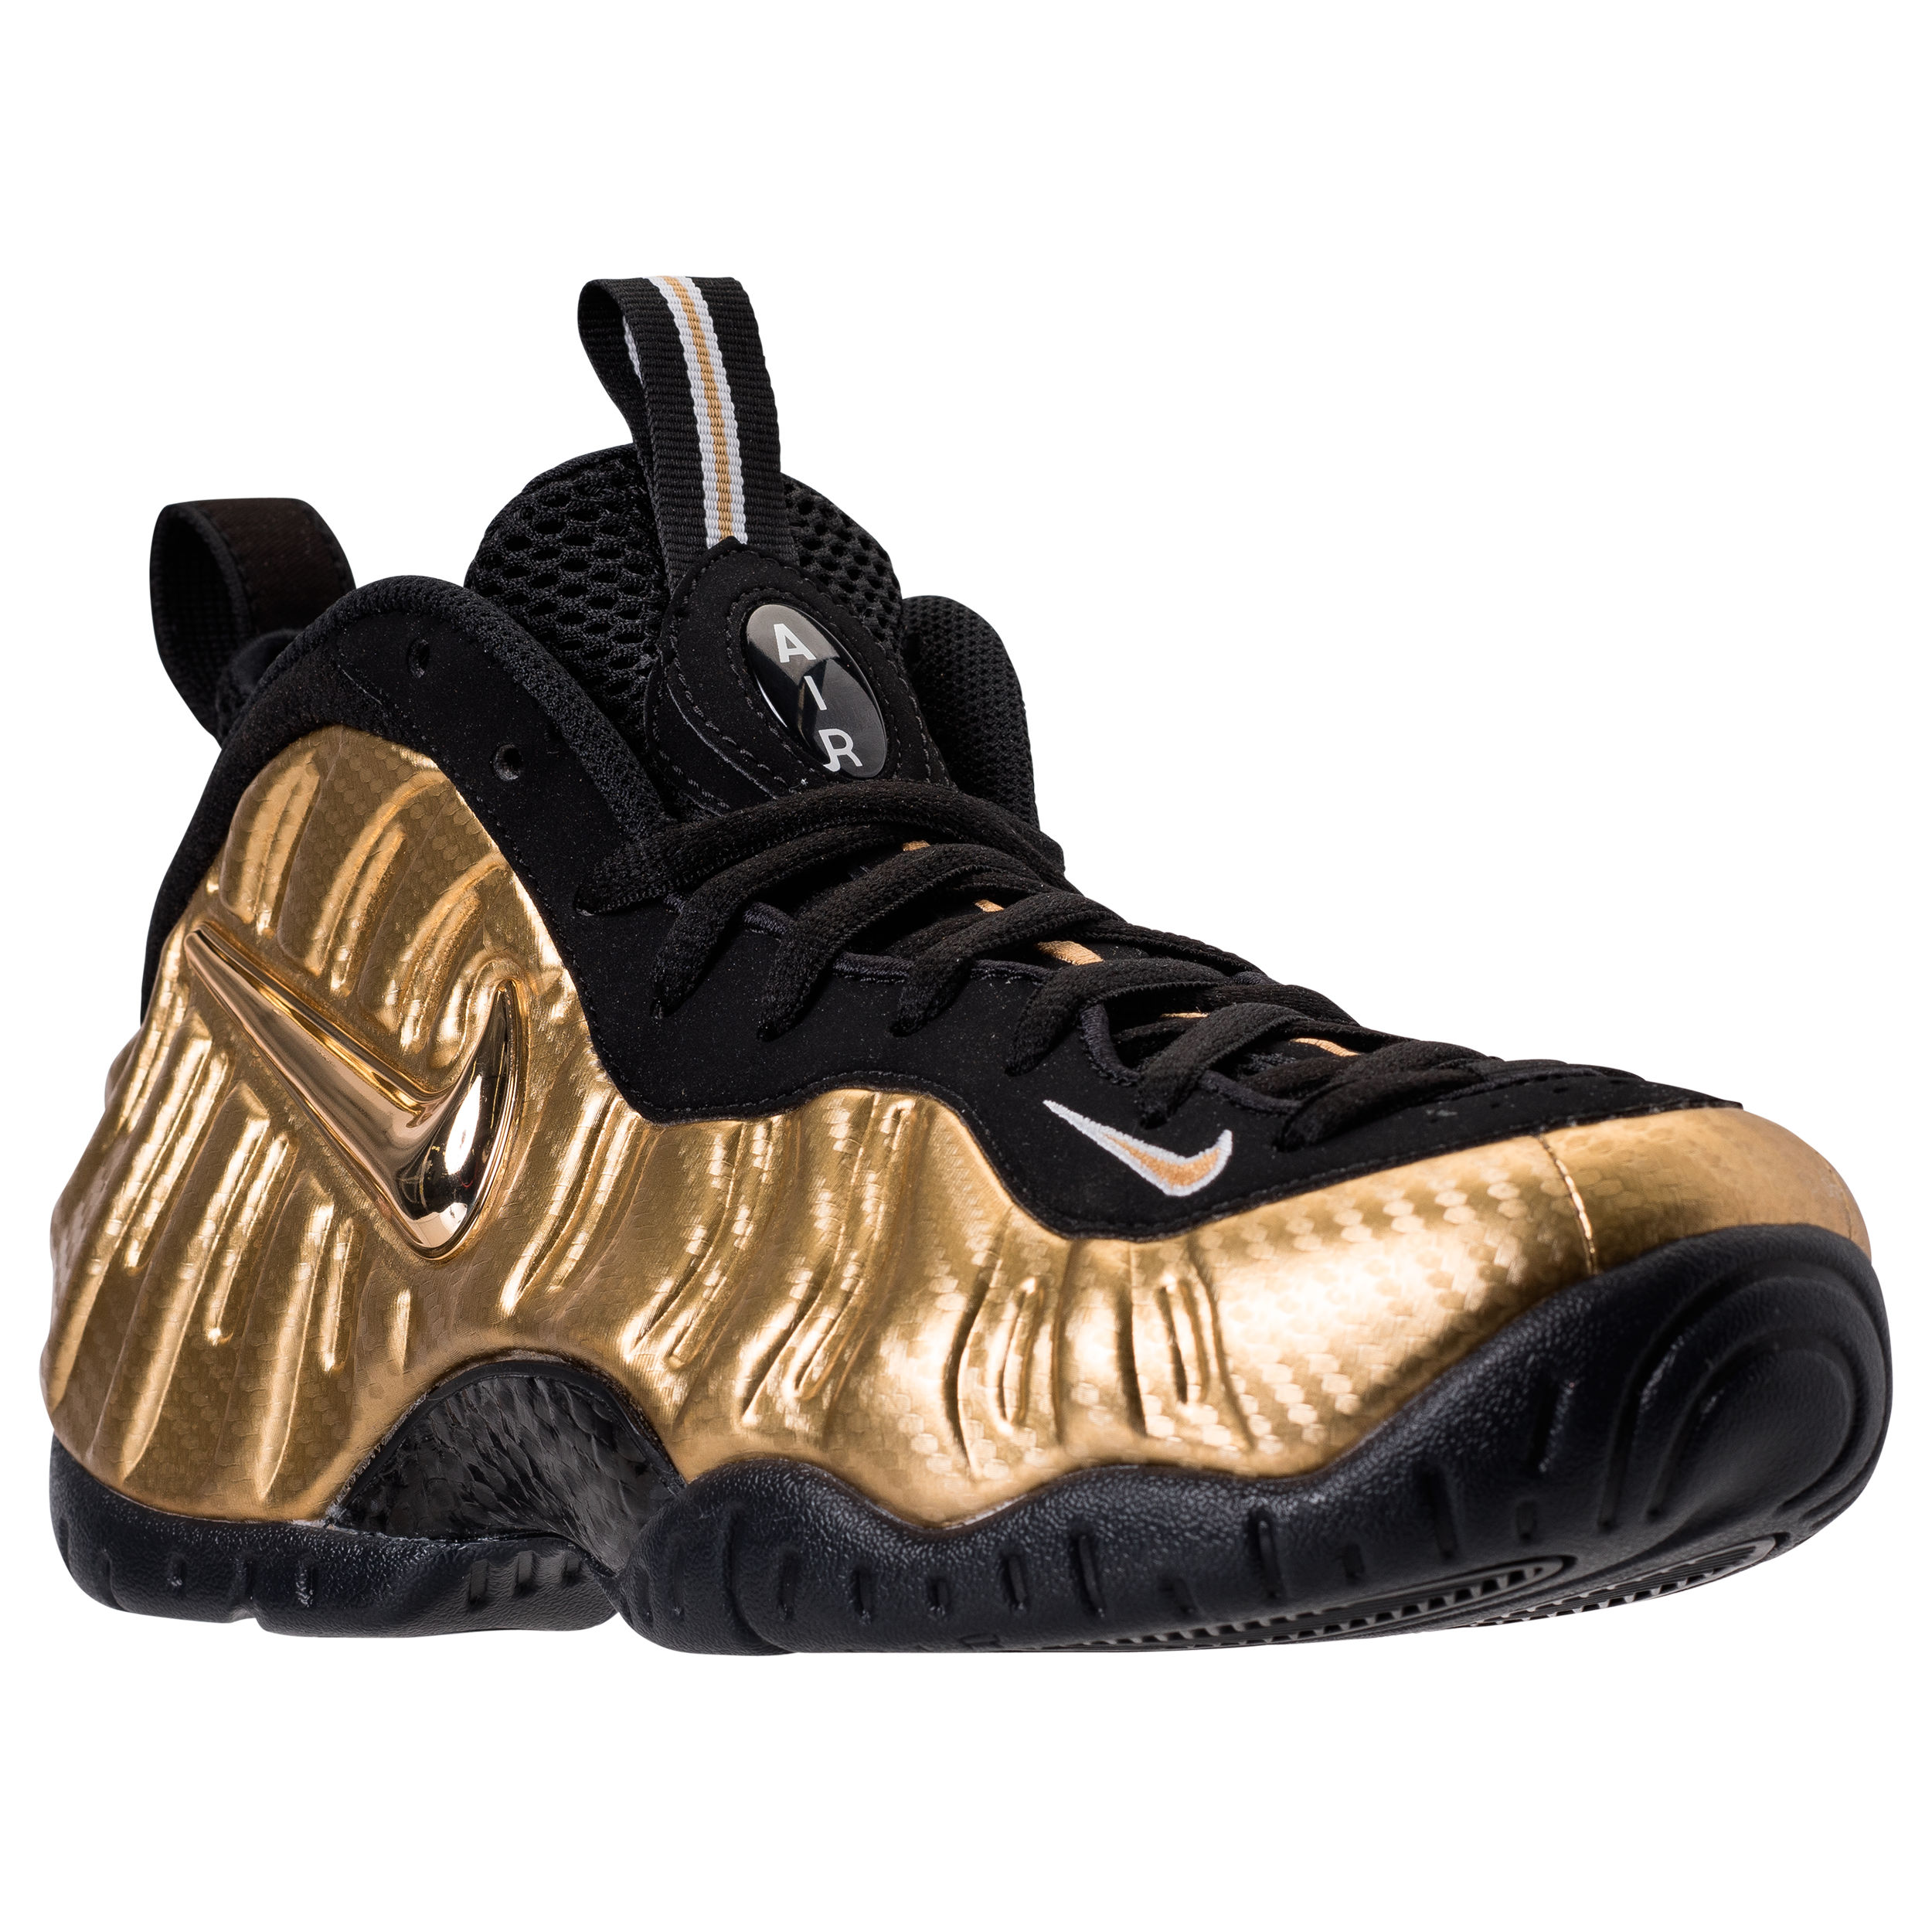 0efcc0f5343 nike air foamposite pro metallic gold 1 - WearTesters